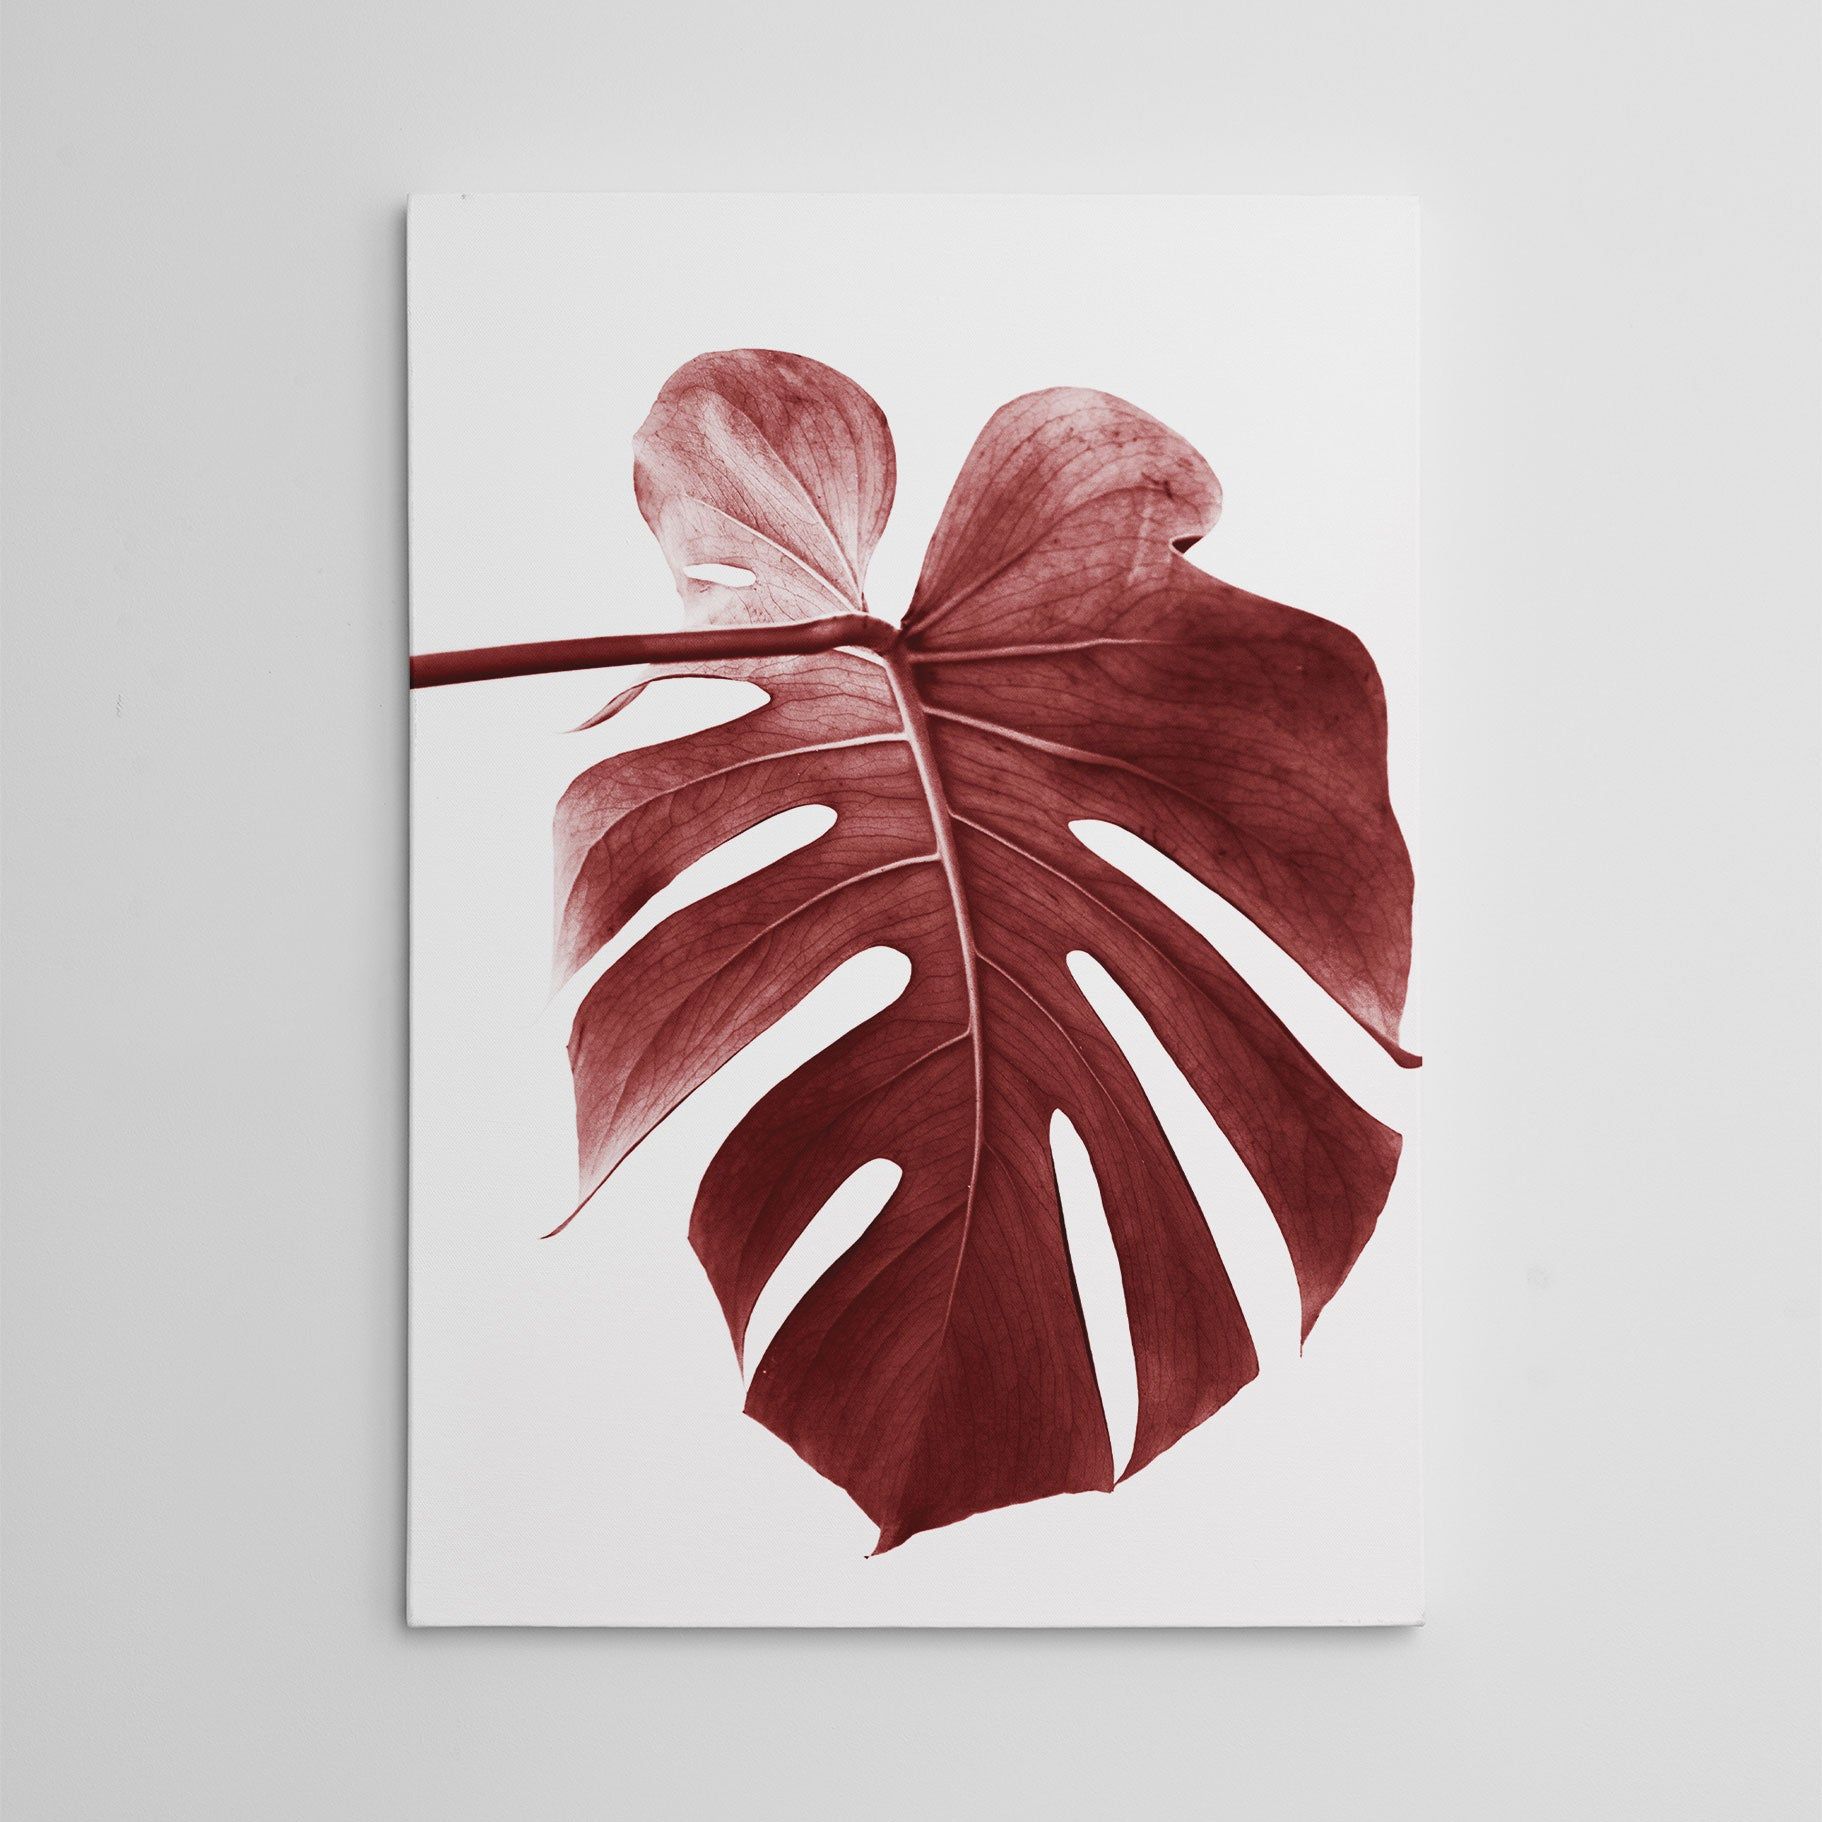 Nature inspired canvas print, with a pale red leaf, on white background.